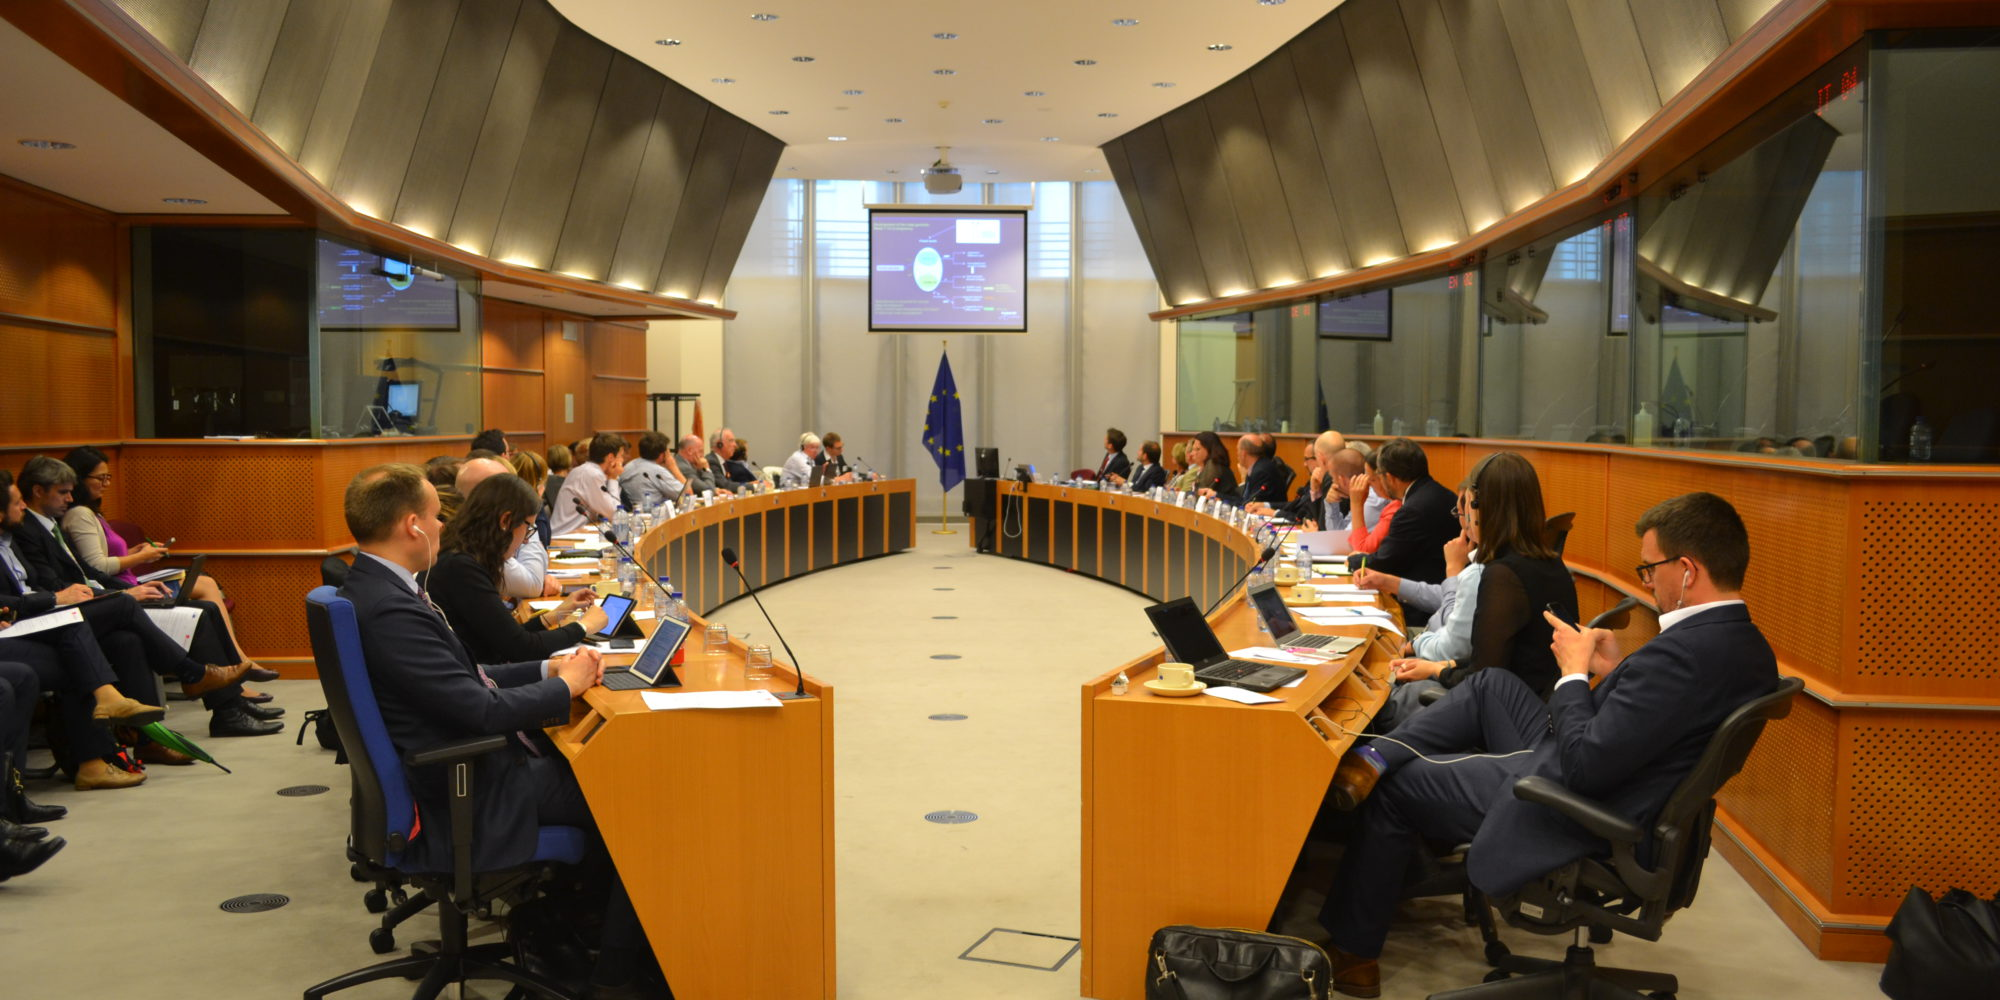 Pavel Poc, then Vice-Chair of the European Parliament Committee on Environment, Public Health and Food Safety (ENVI) and now Vice Chair of PA, hosted this roundtable meeting in the European Parliament on 6 June 2017 on Biological Low-Risk Pesticides for Sustainable Integrated Pest Management: A Multi-Stakeholder Approach', organized with the support of PA.